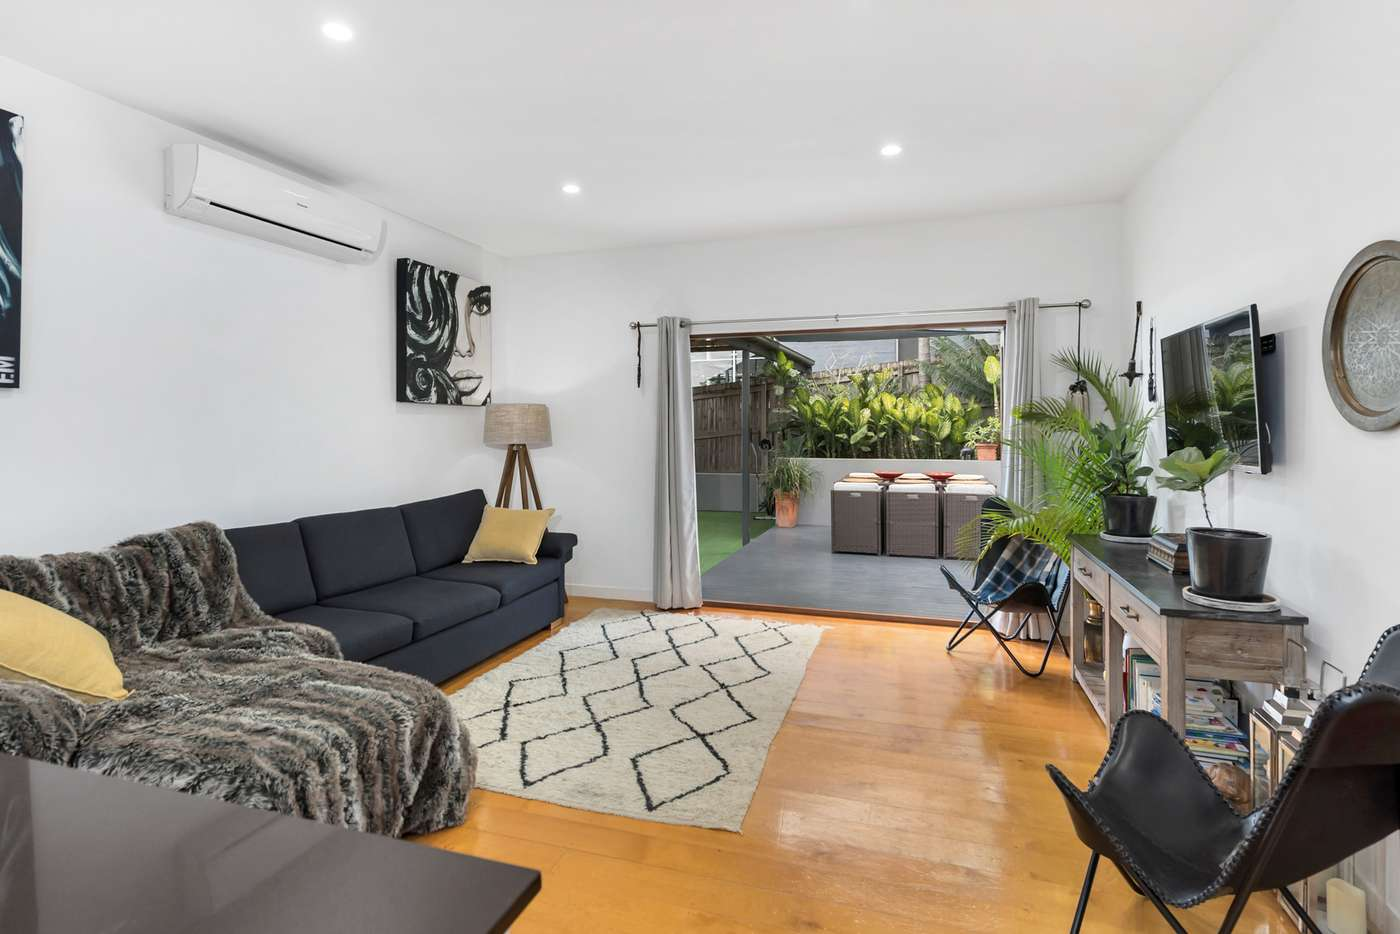 Sixth view of Homely house listing, 19 Cricket Street, Petrie Terrace QLD 4000